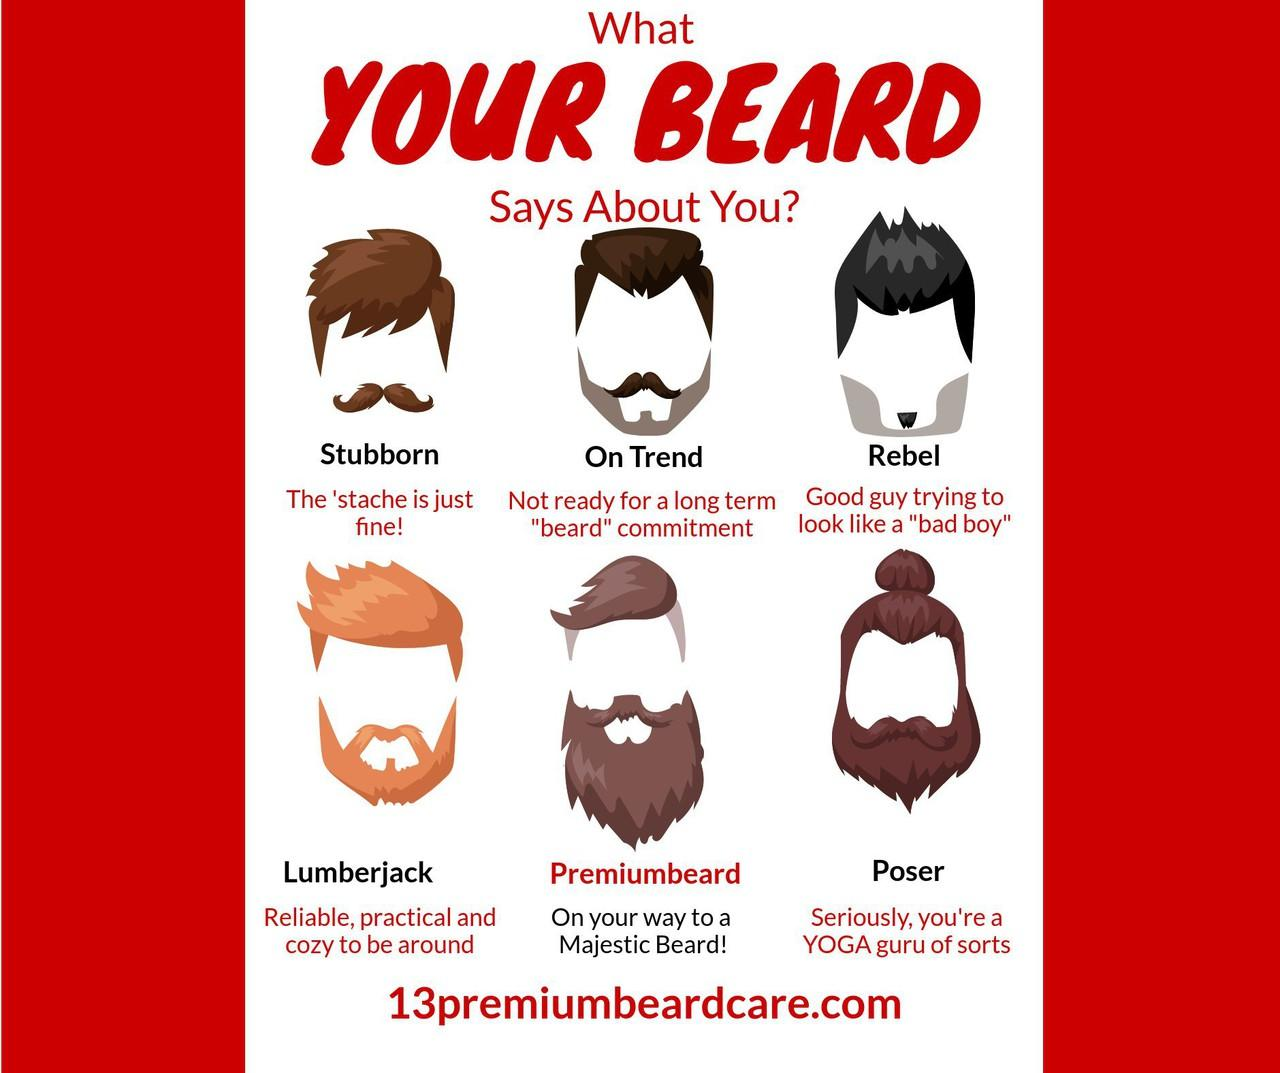 13premiumbeardcare.com What your beard says about you